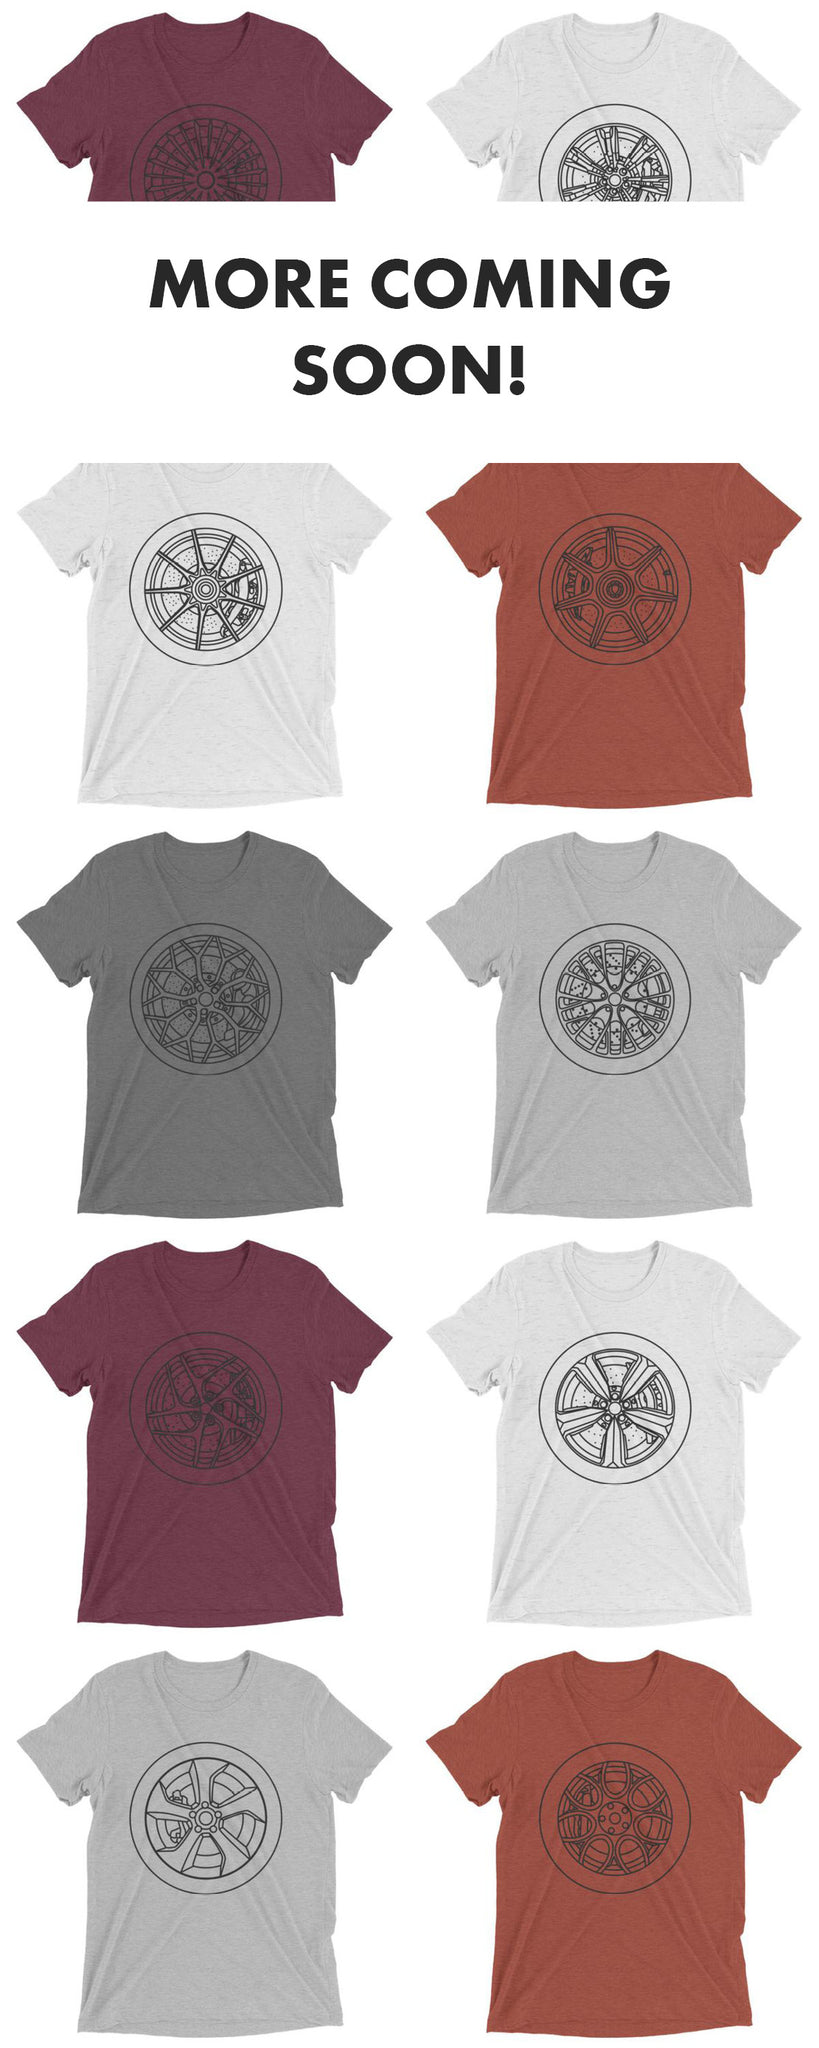 Minimal car wheel t-shirts now available on Artlines Design.